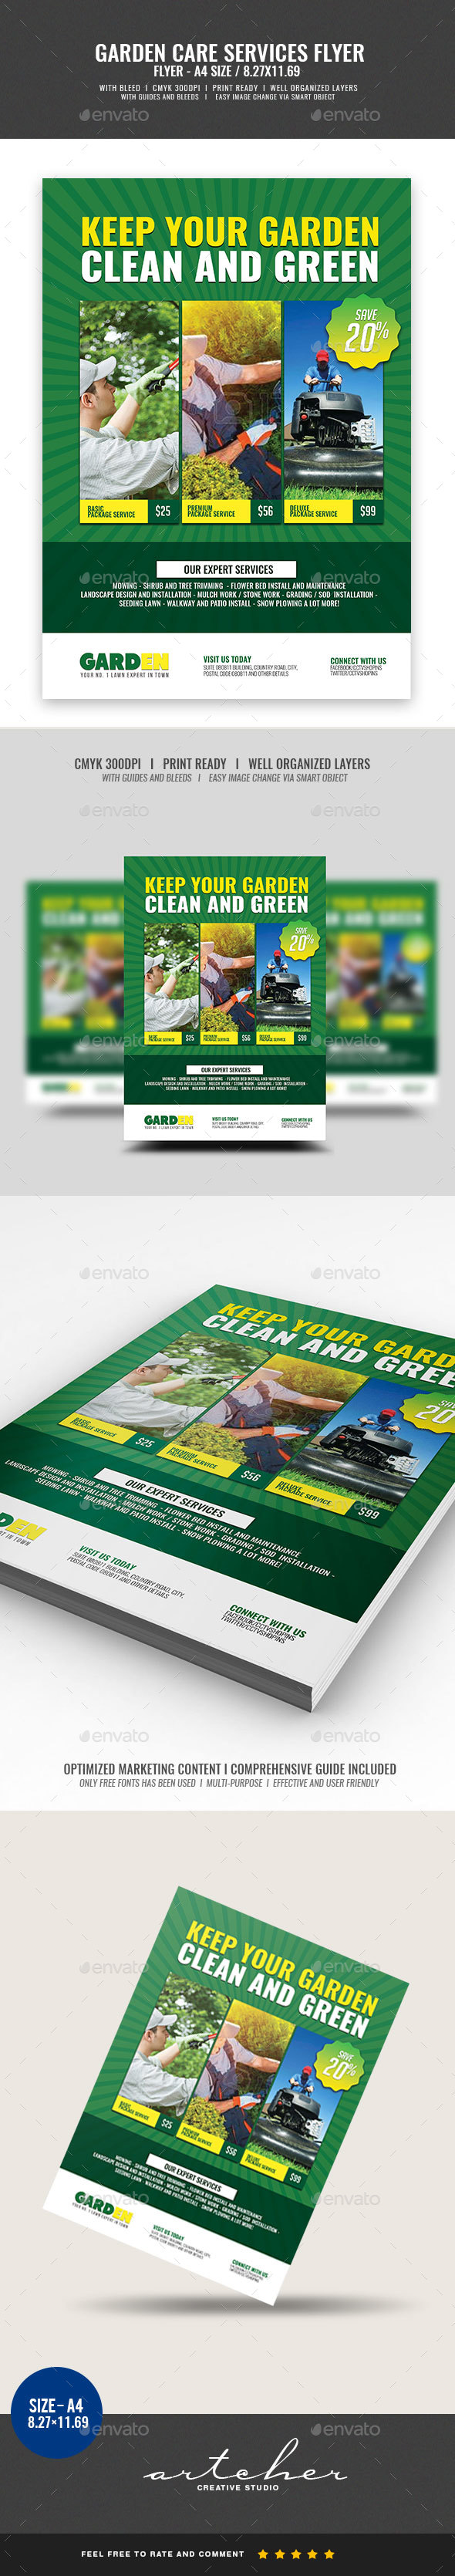 Landscaping Services Flyer v2